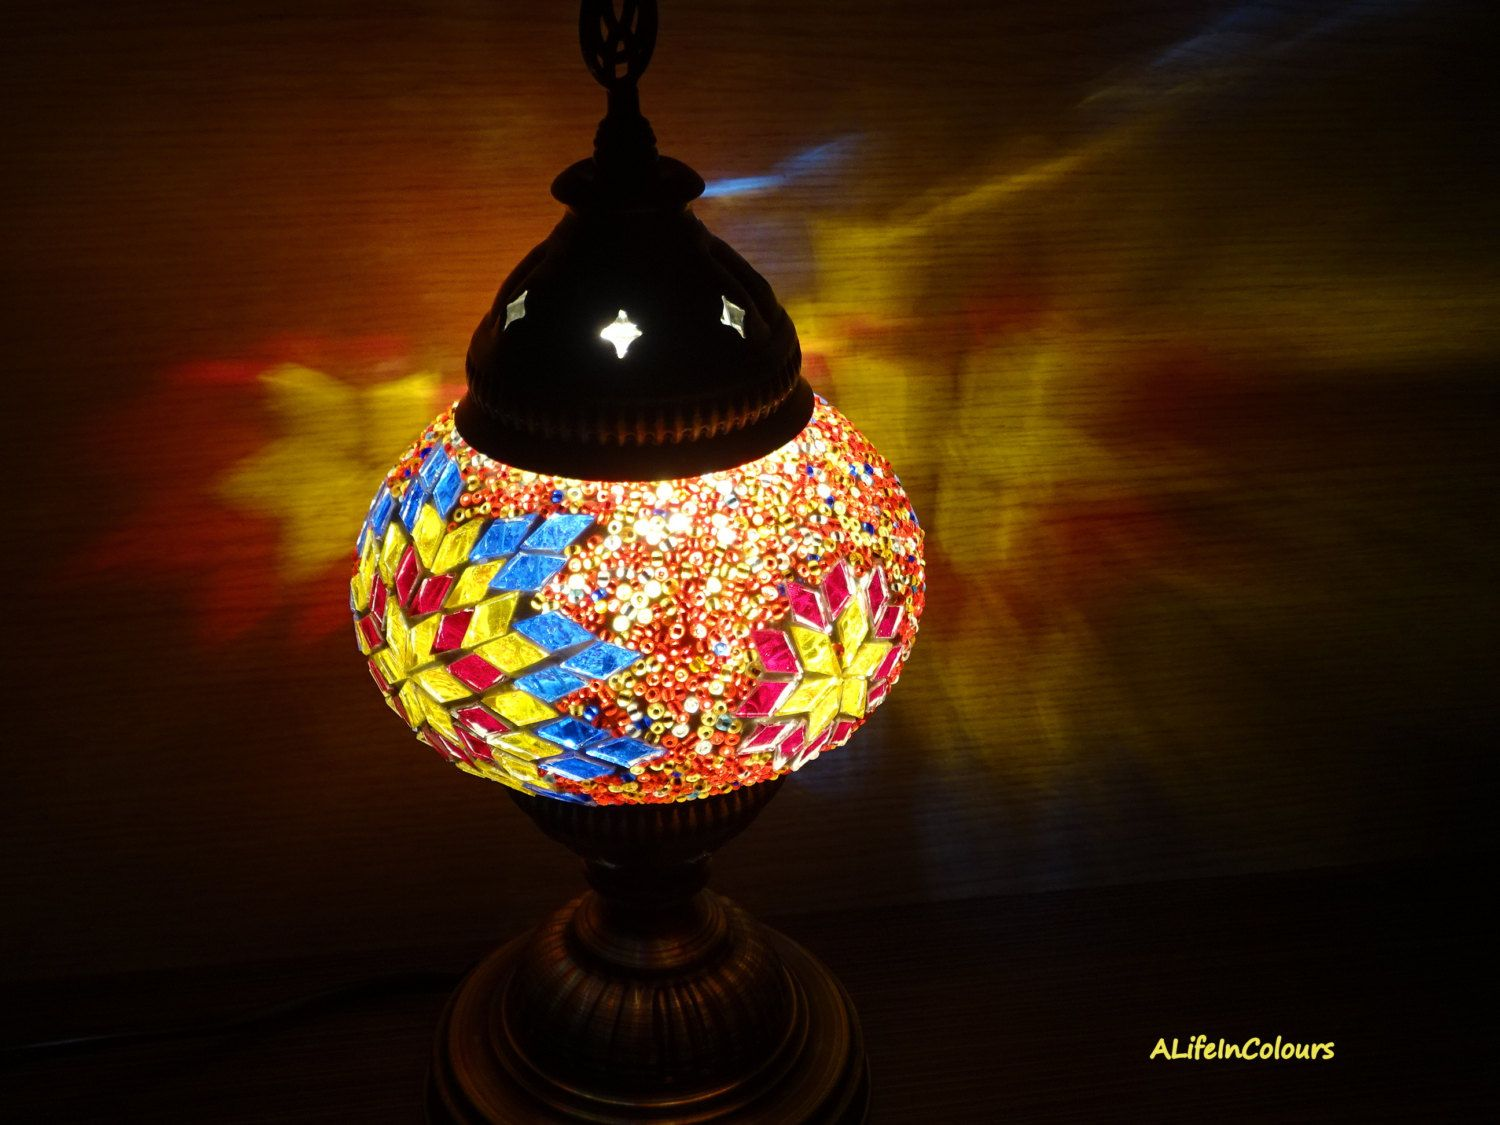 Night Lamps For Bedroom Handmade Unique Turkish Style Colourful Glass Mosaic Table Lamp